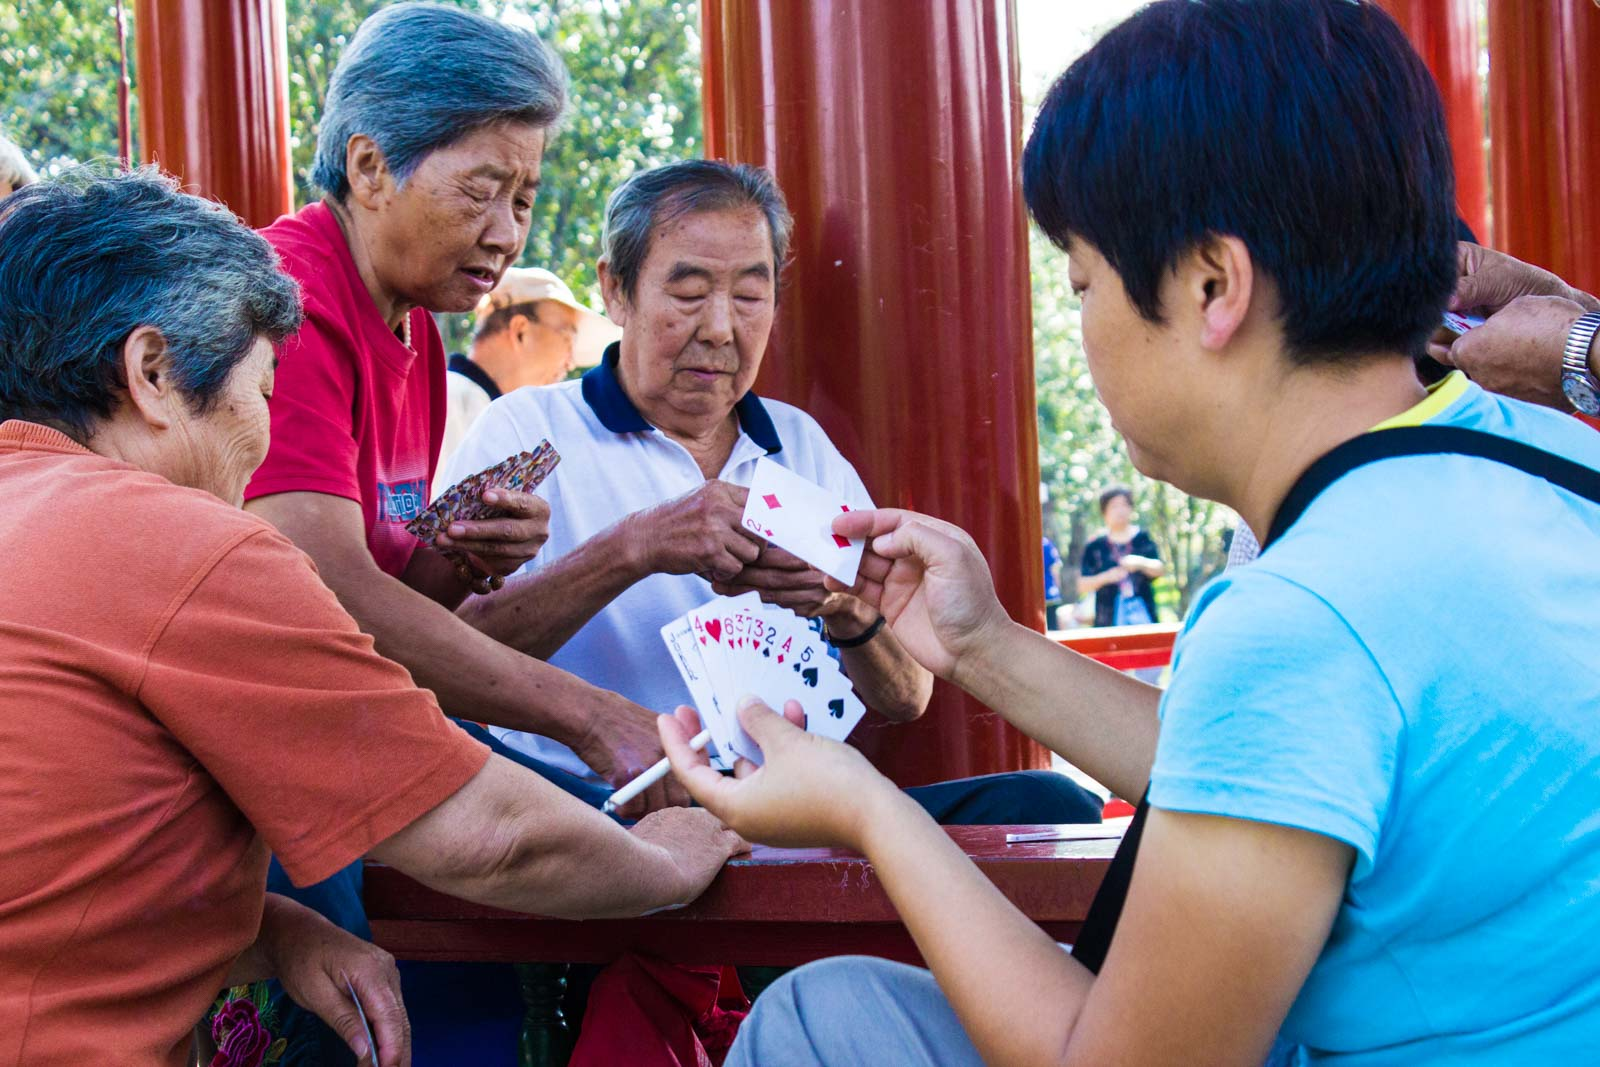 Temple of Heaven, Beijing park with old people exercising